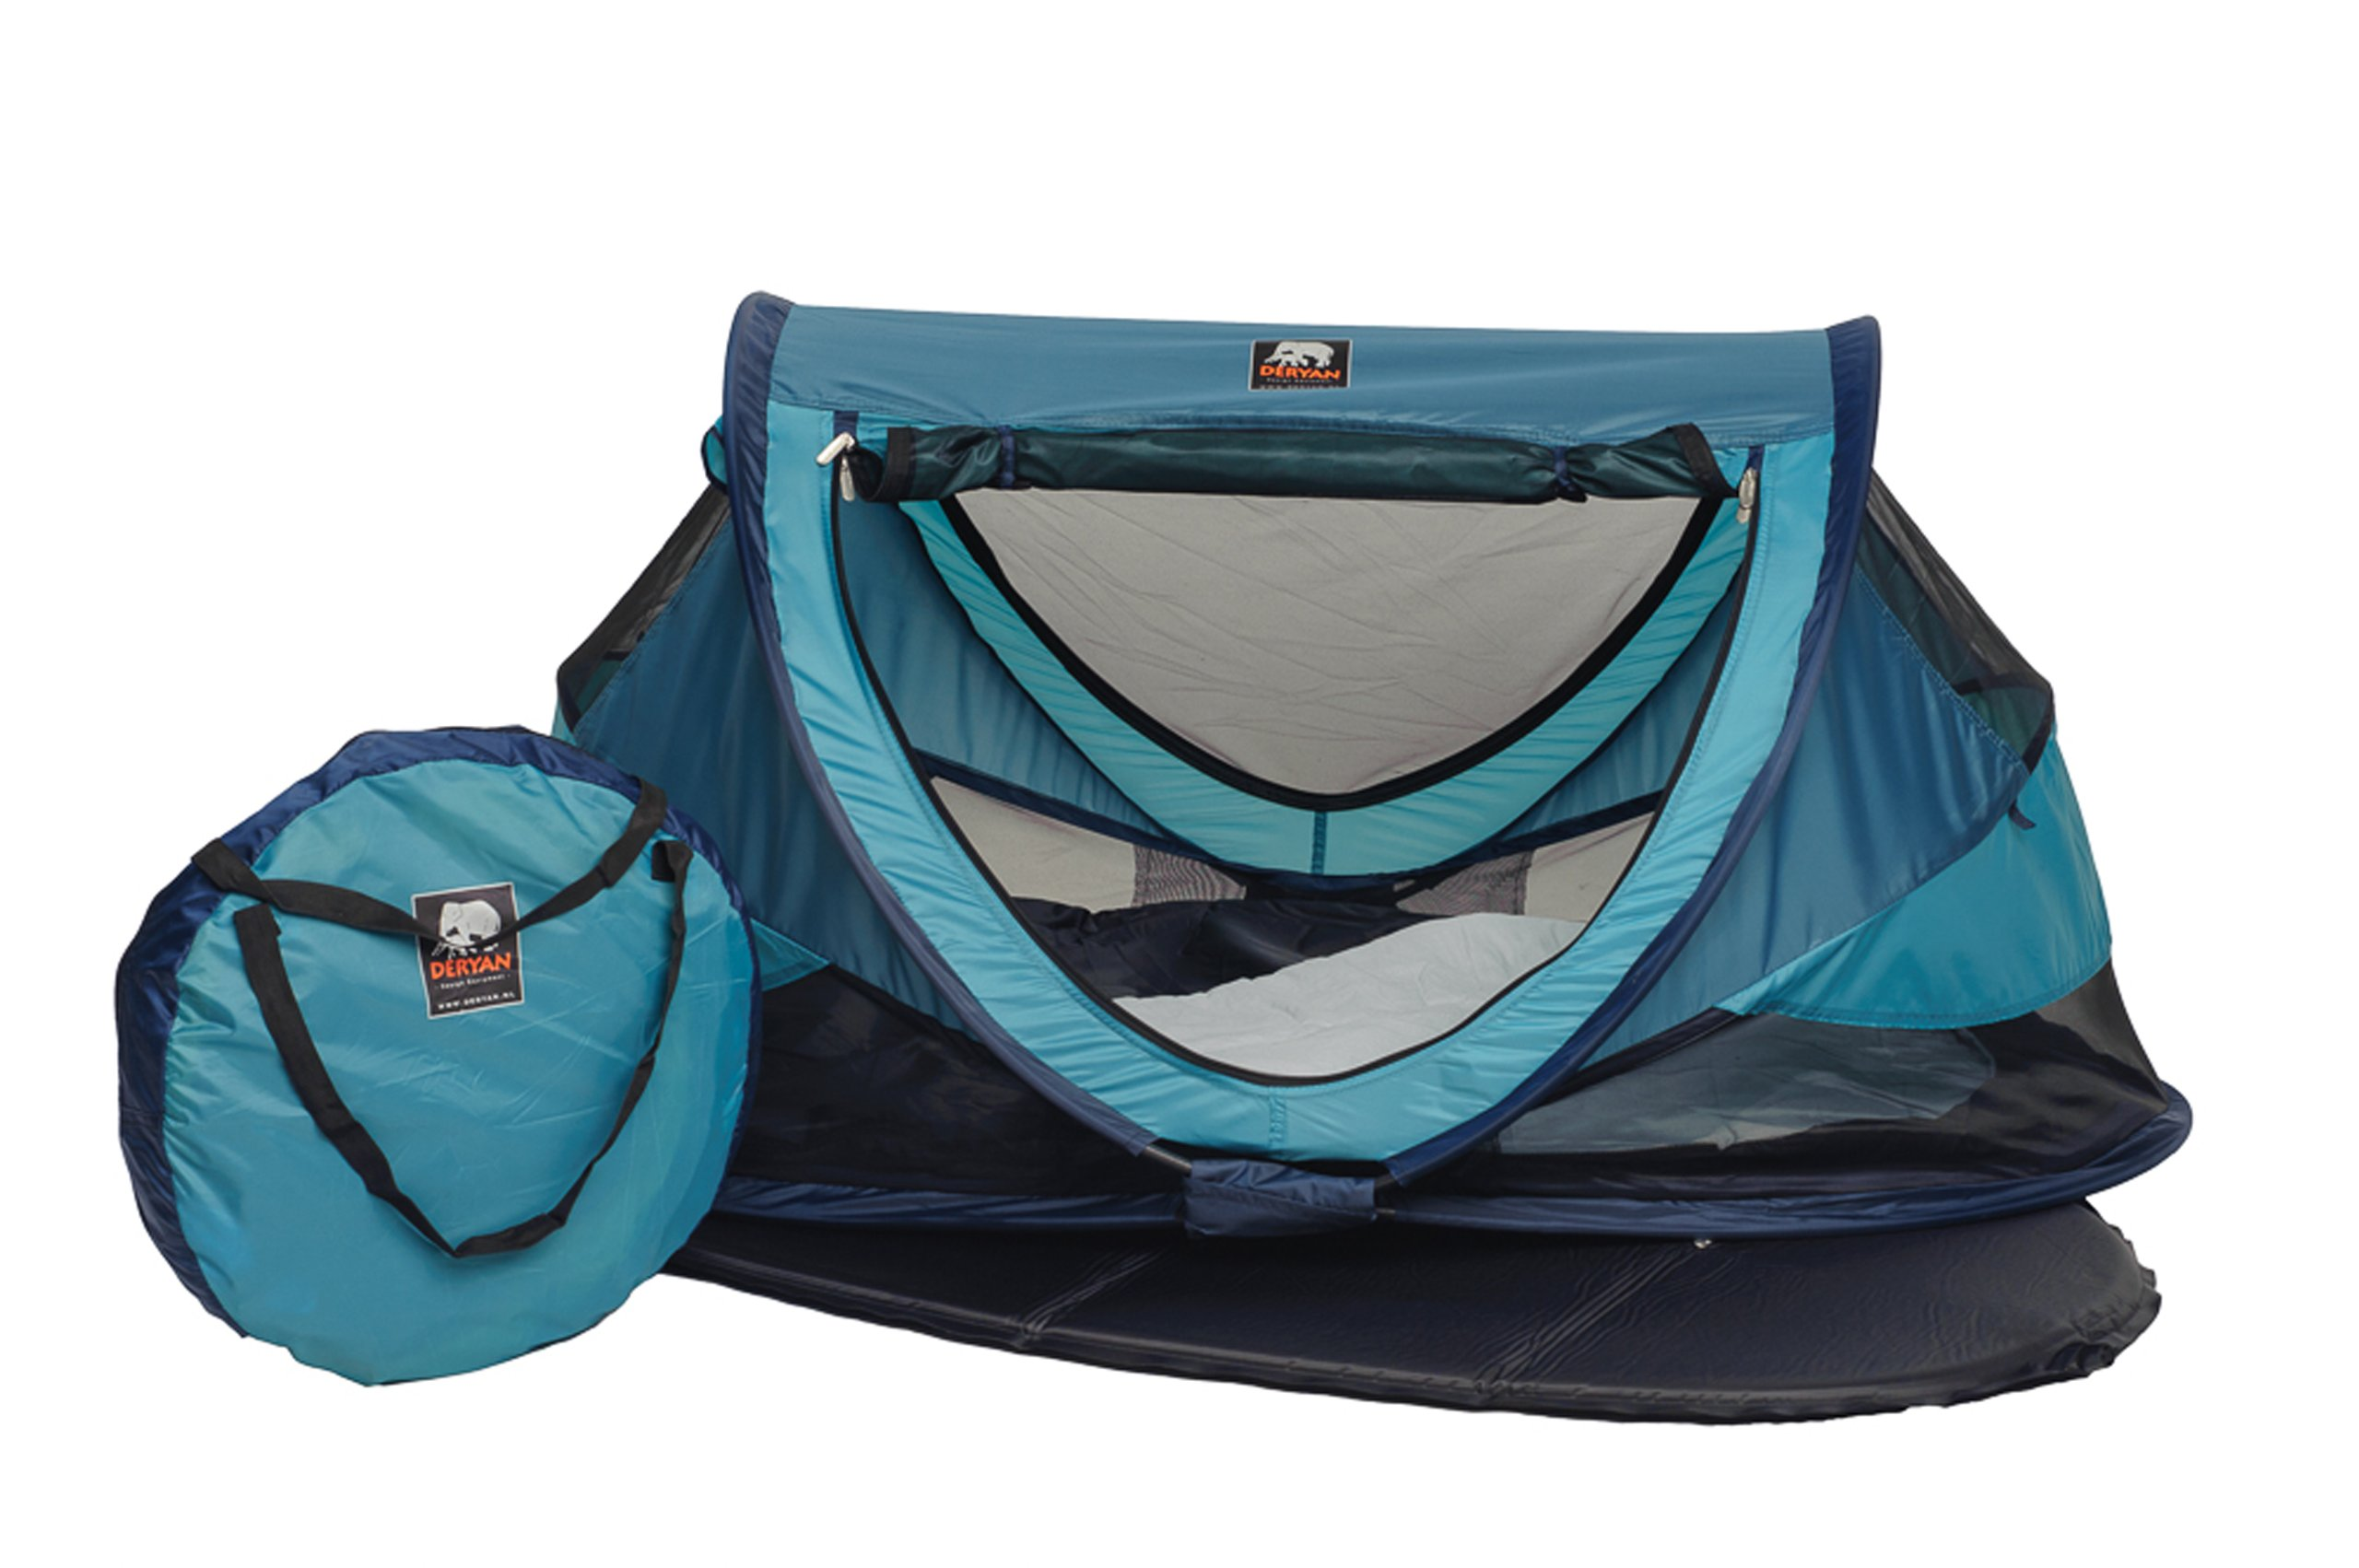 Travel Cot Peuter Luxe (Ocean) Deryan 50% UV Protection and flame retardant fabric Setup in 2 seconds and a anti-musquito net  2